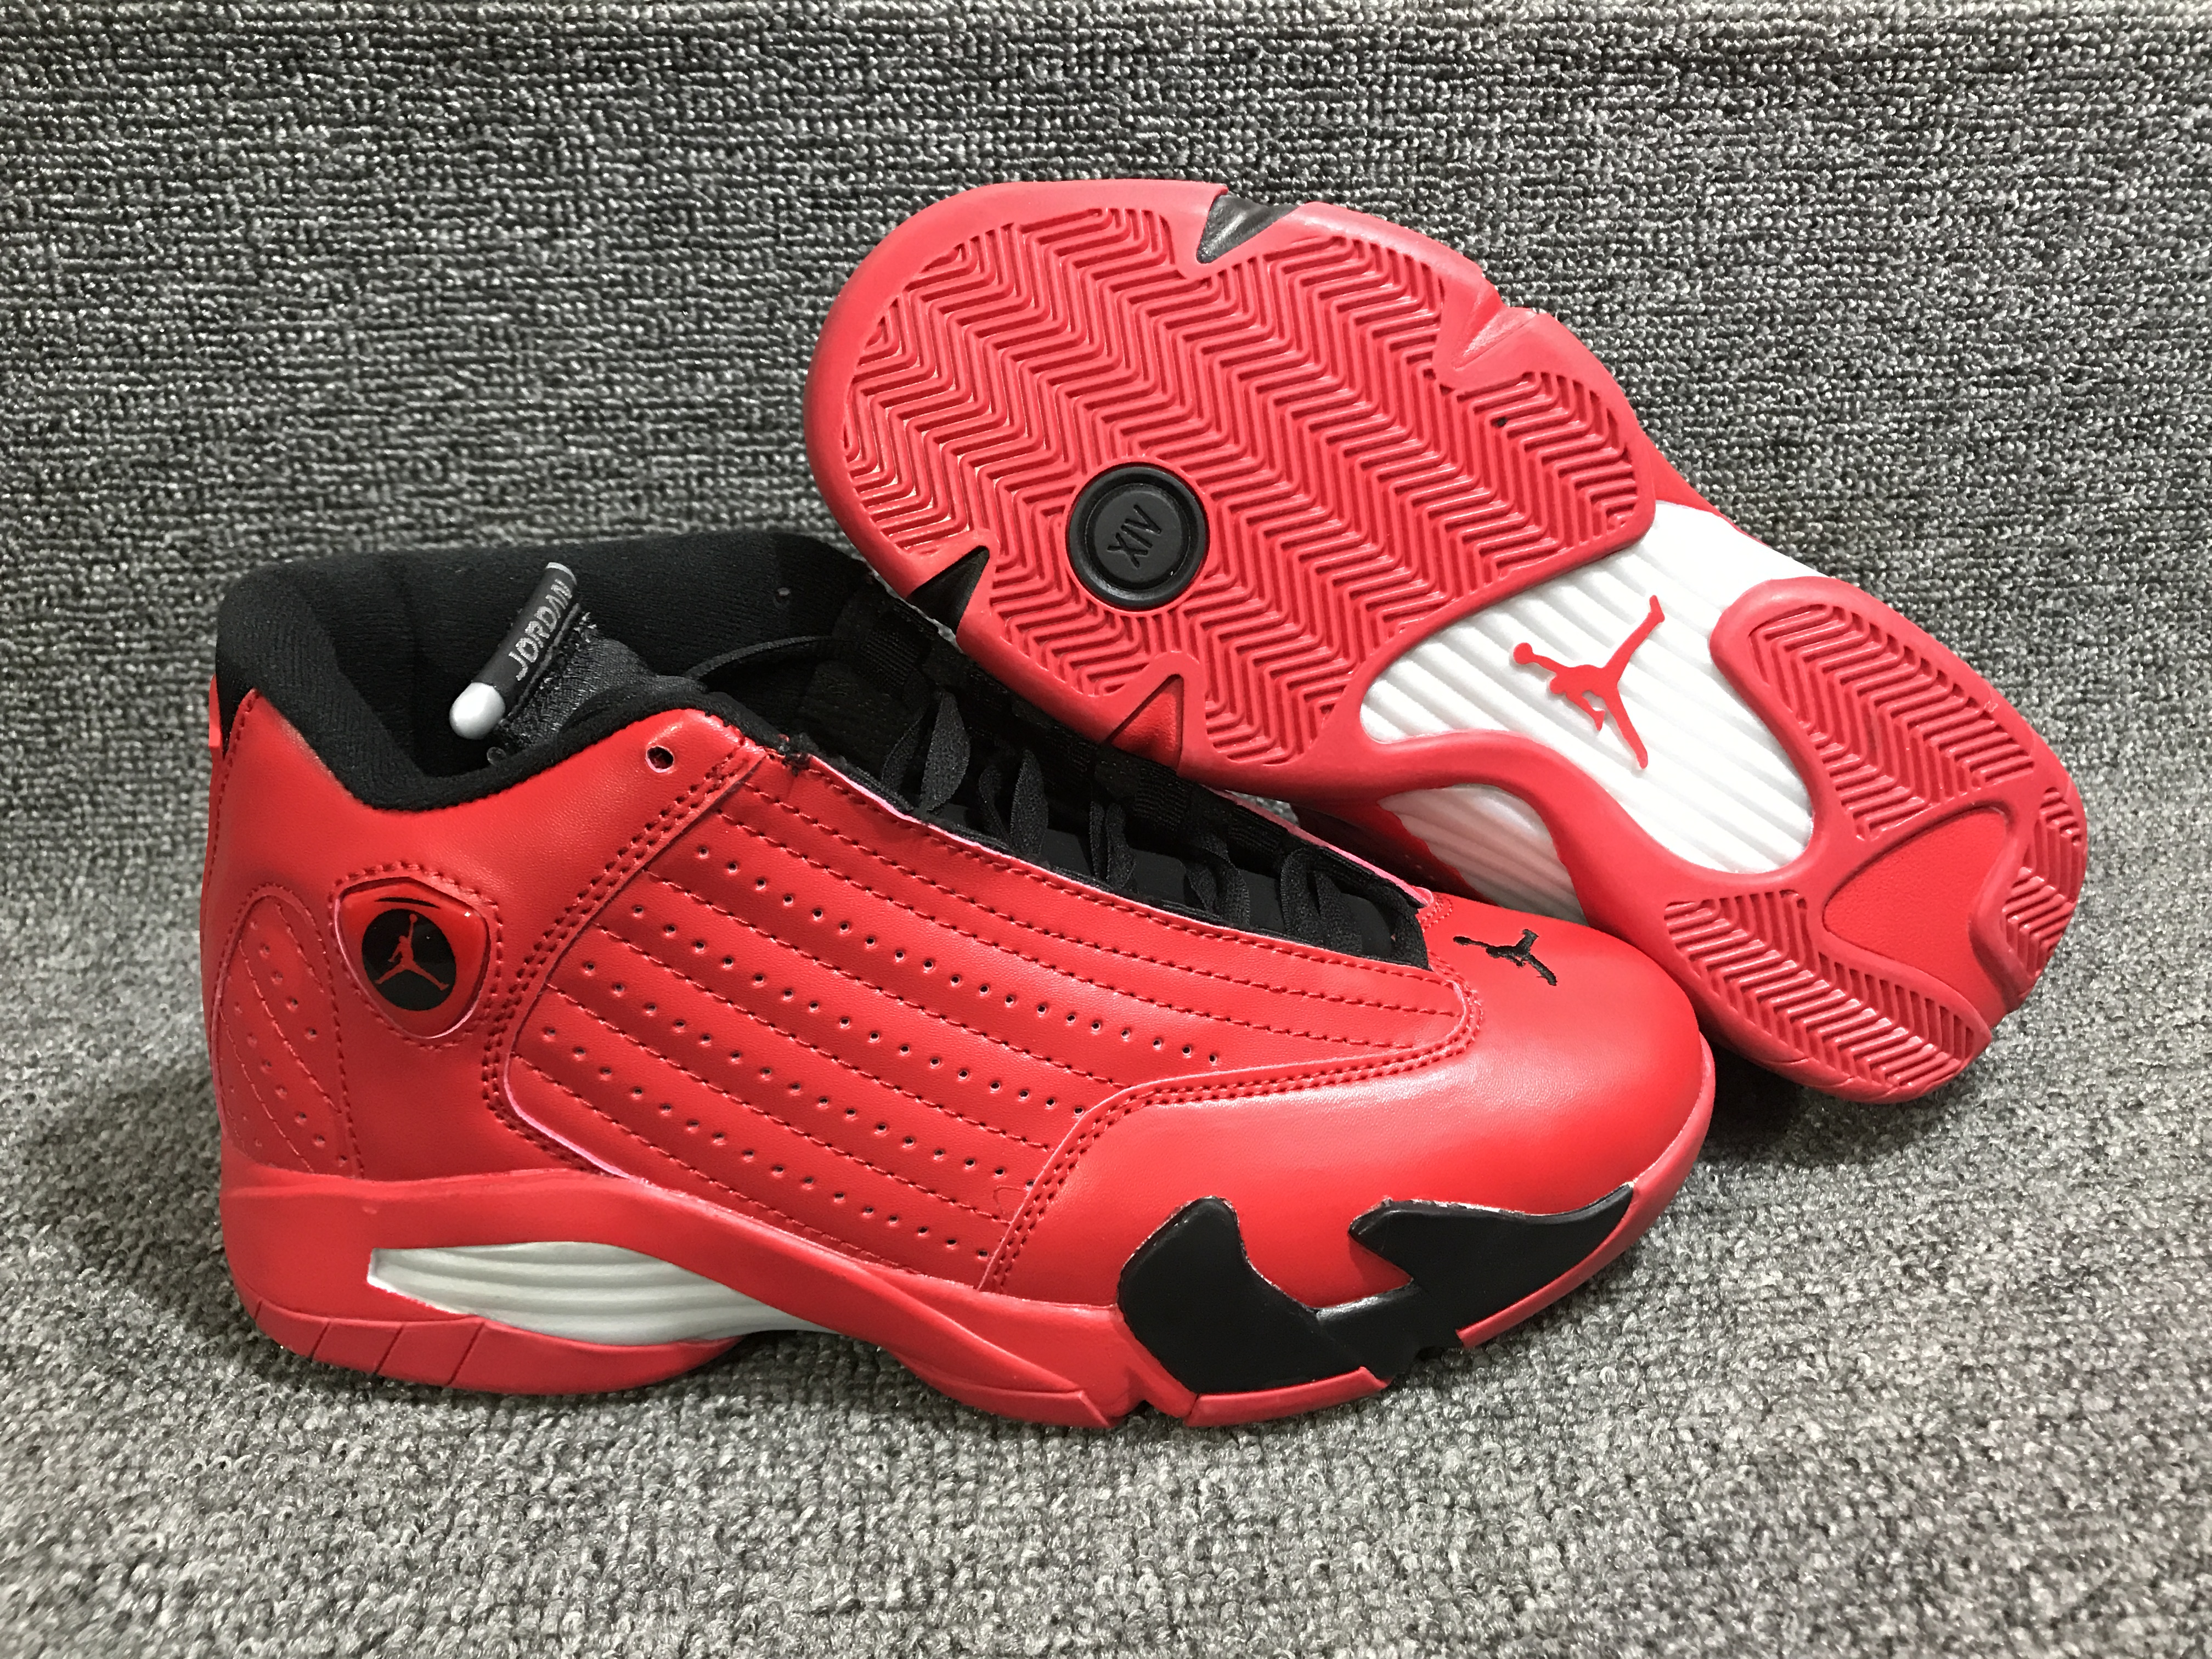 New Air Jordan 14 Red Black White Shoes